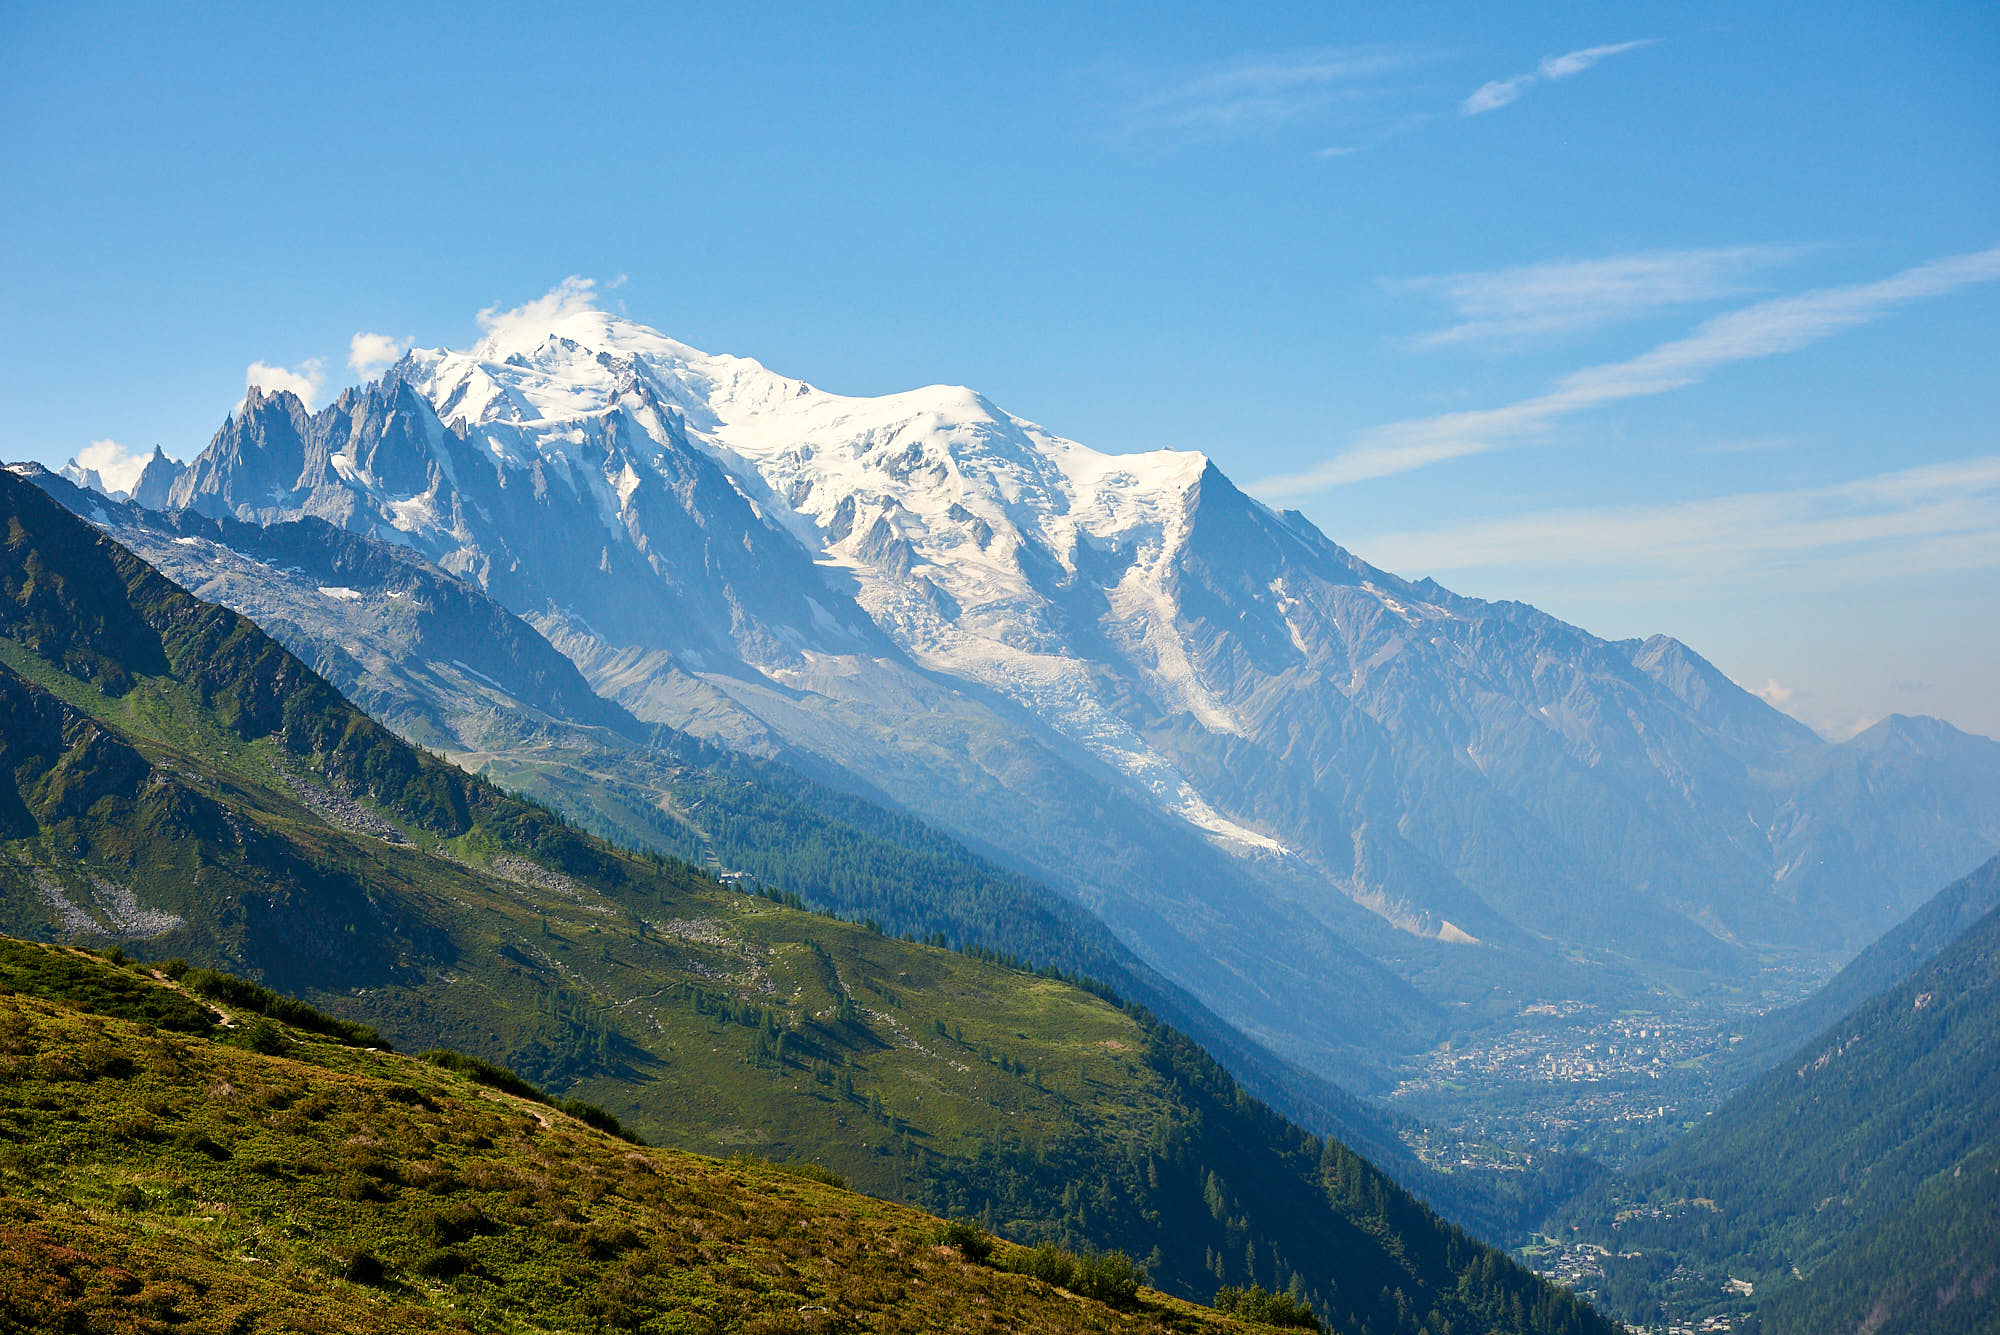 View of Mont Blanc and Chamonix in France